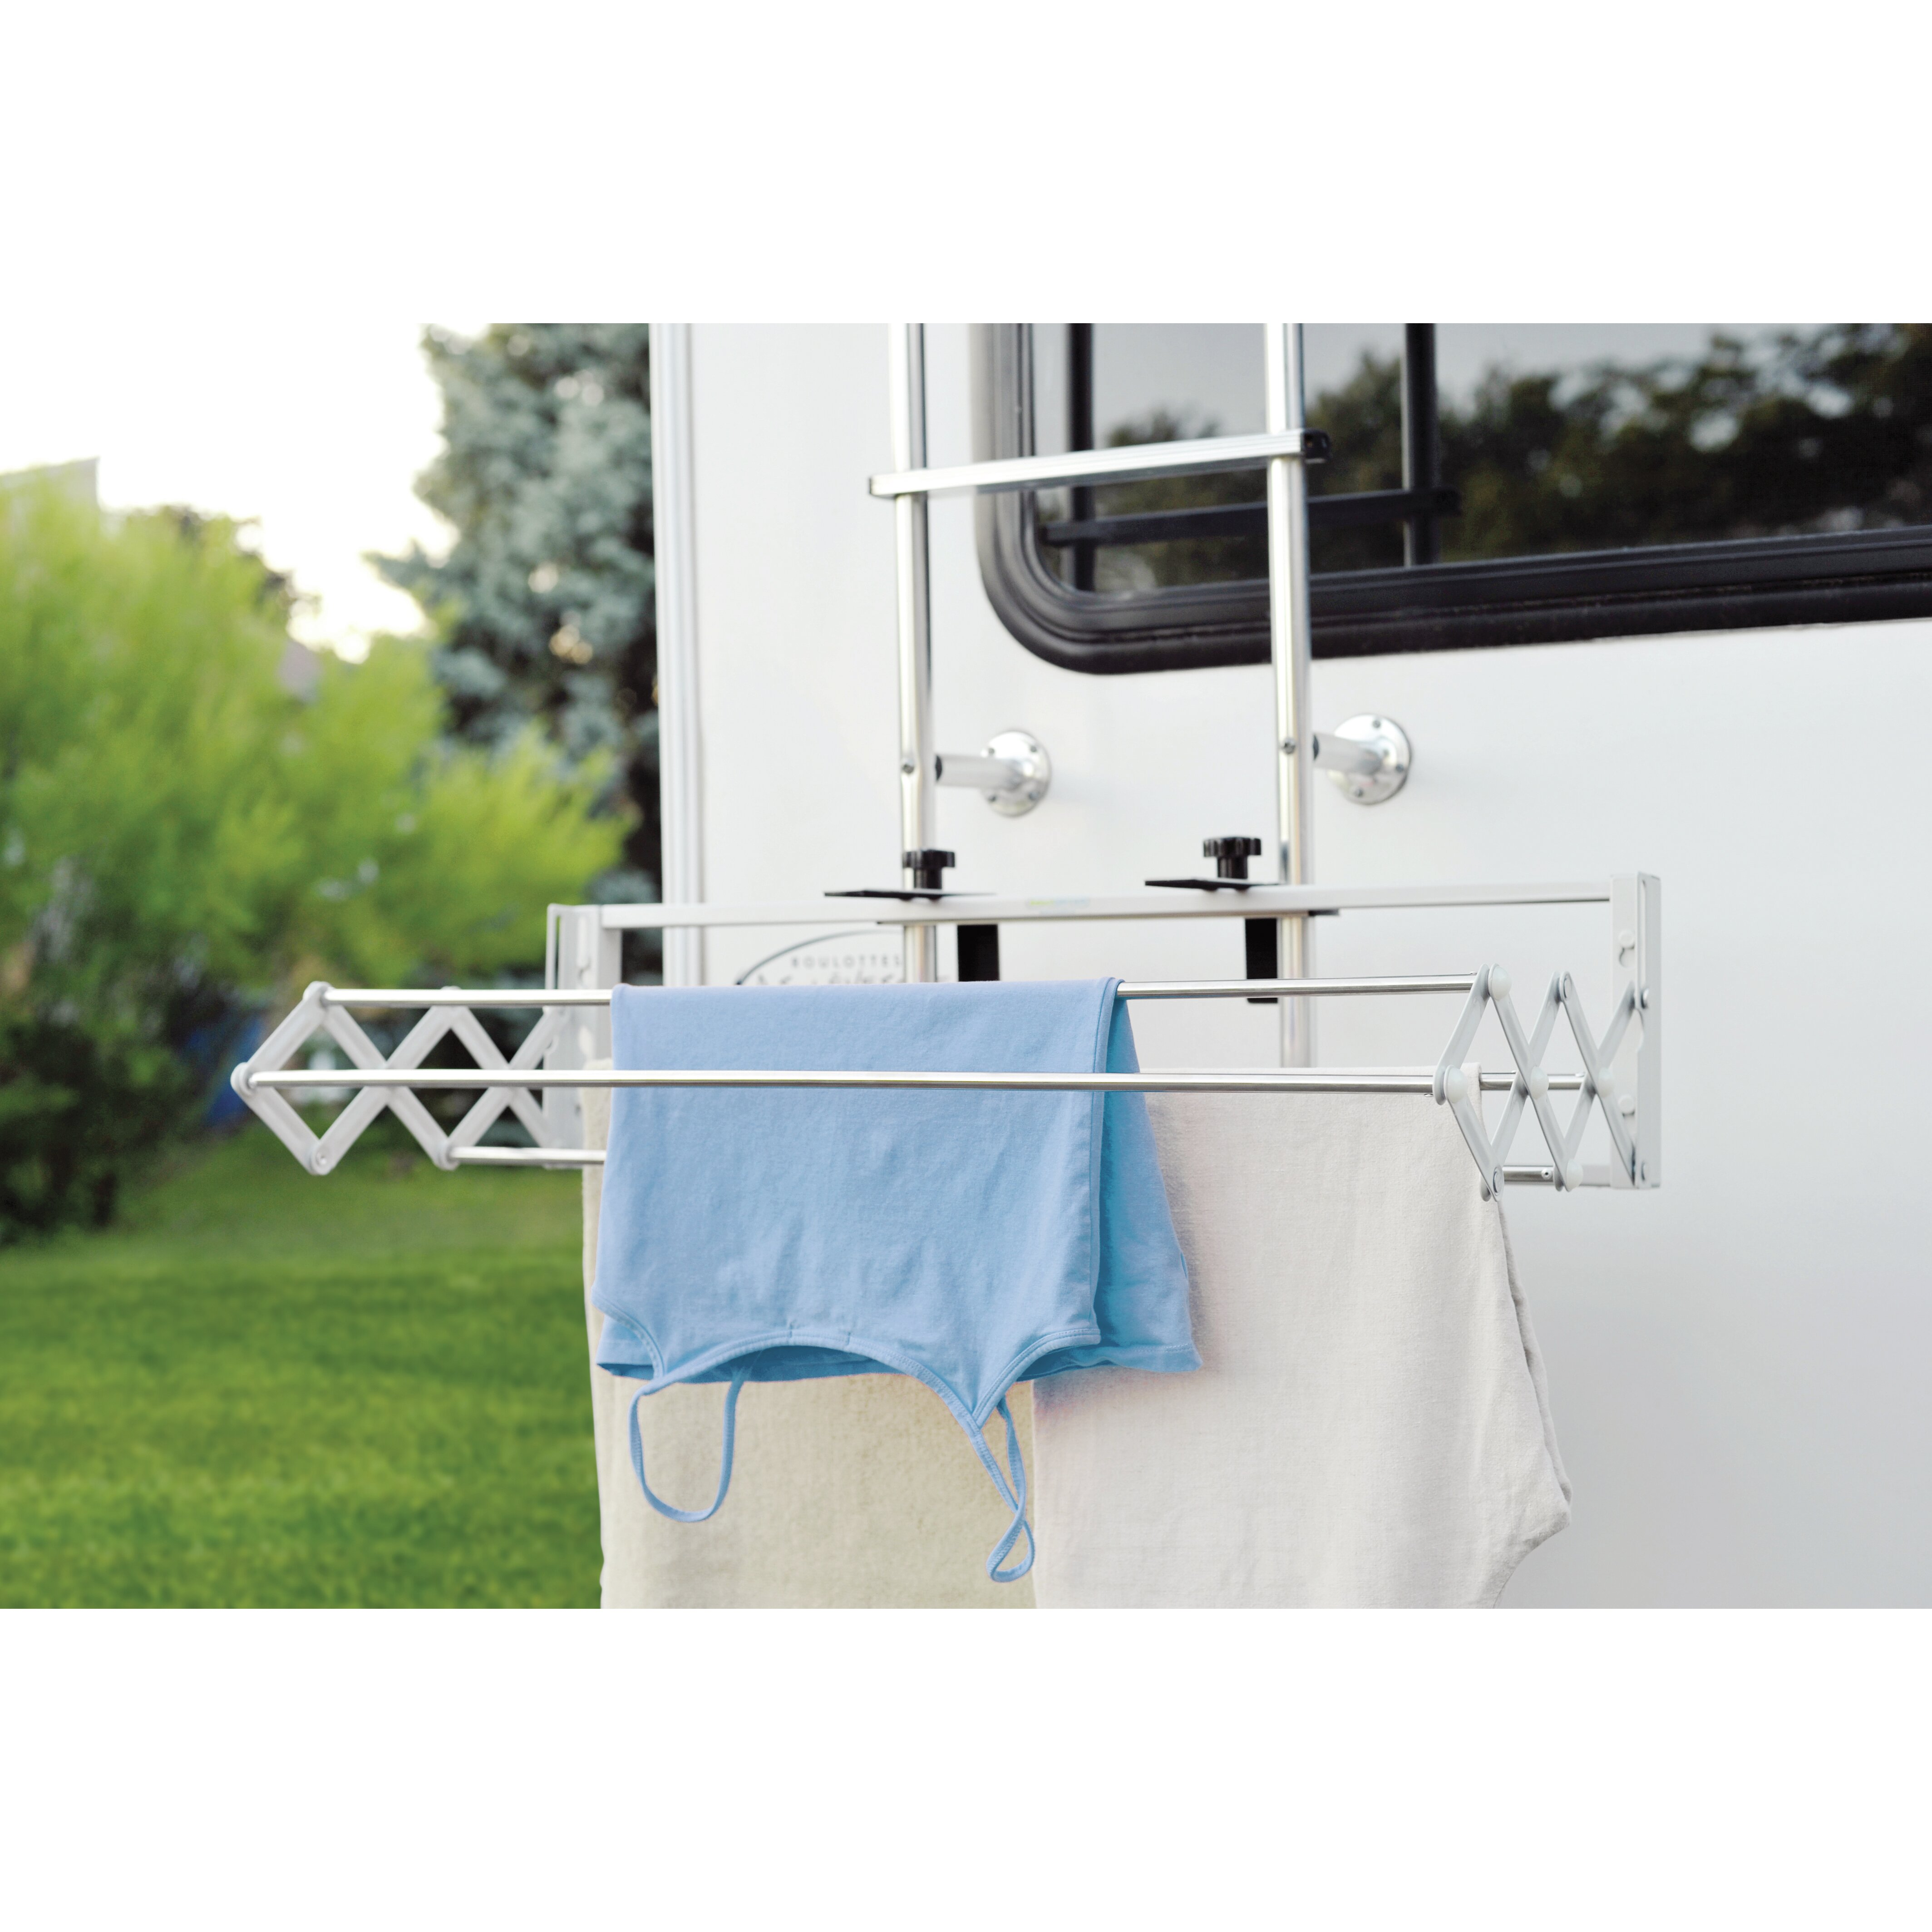 Xcentrik Compact Smart Dryer Telescopic Clothes Drying ...